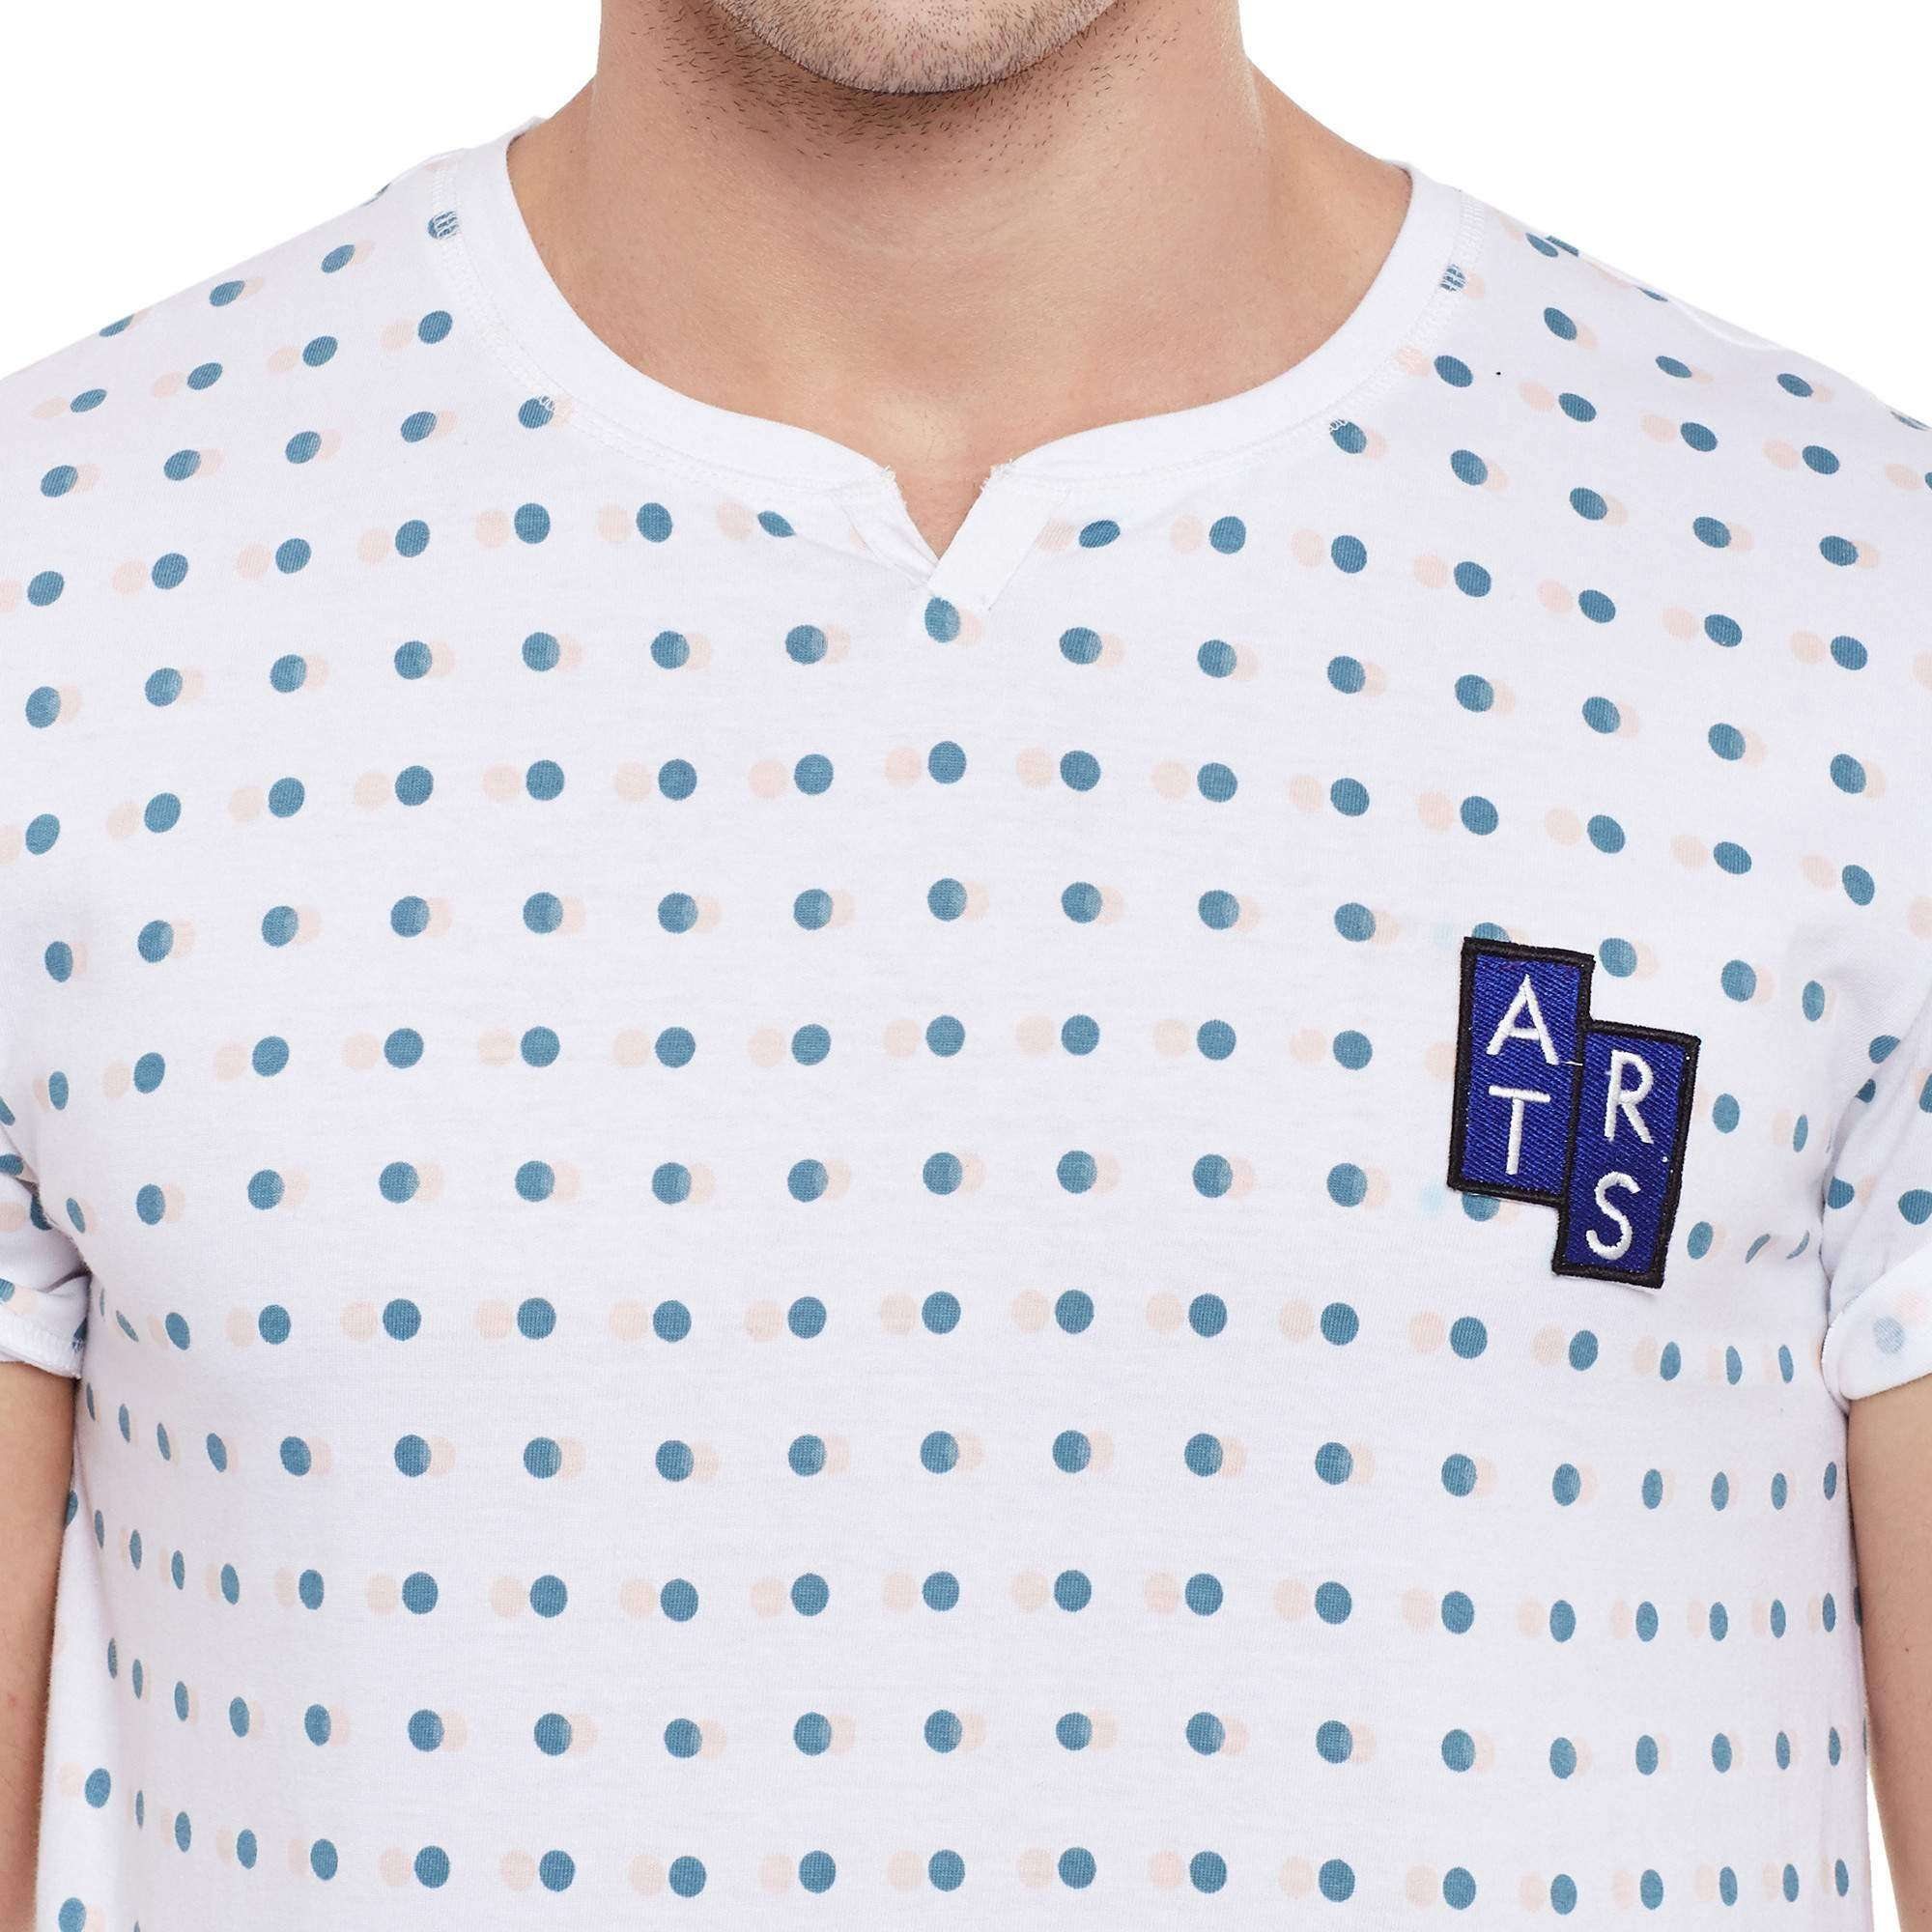 Atorse mens half sleeve t-shirt with polka dot printed allover with neck details